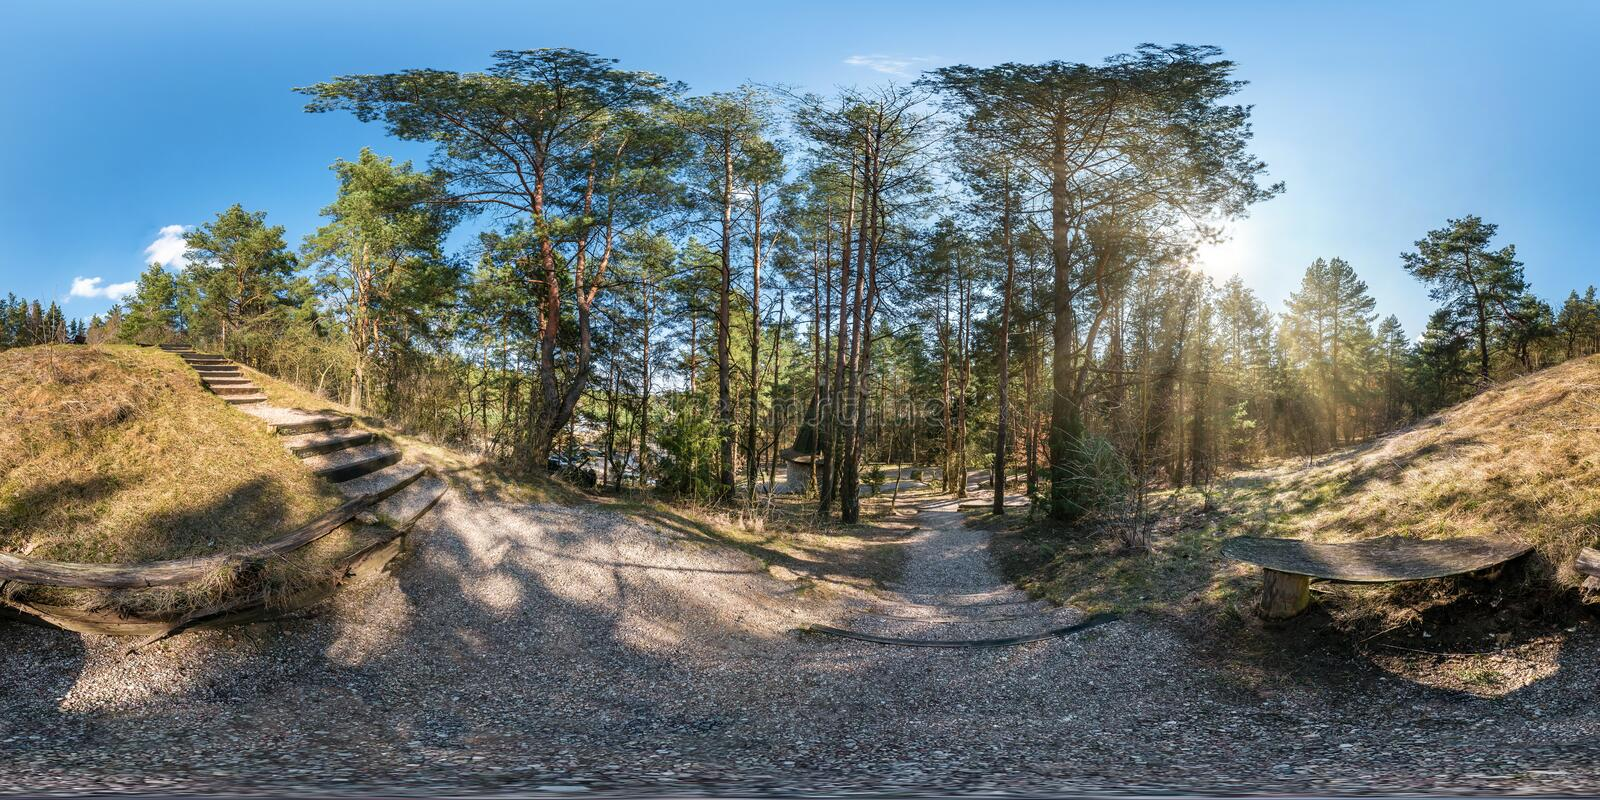 Full spherical hdri panorama 360 degrees angle view on gravel pedestrian footpath and bicycle lane path with stairs in pinery. Forest in sunny spring day in royalty free stock photos